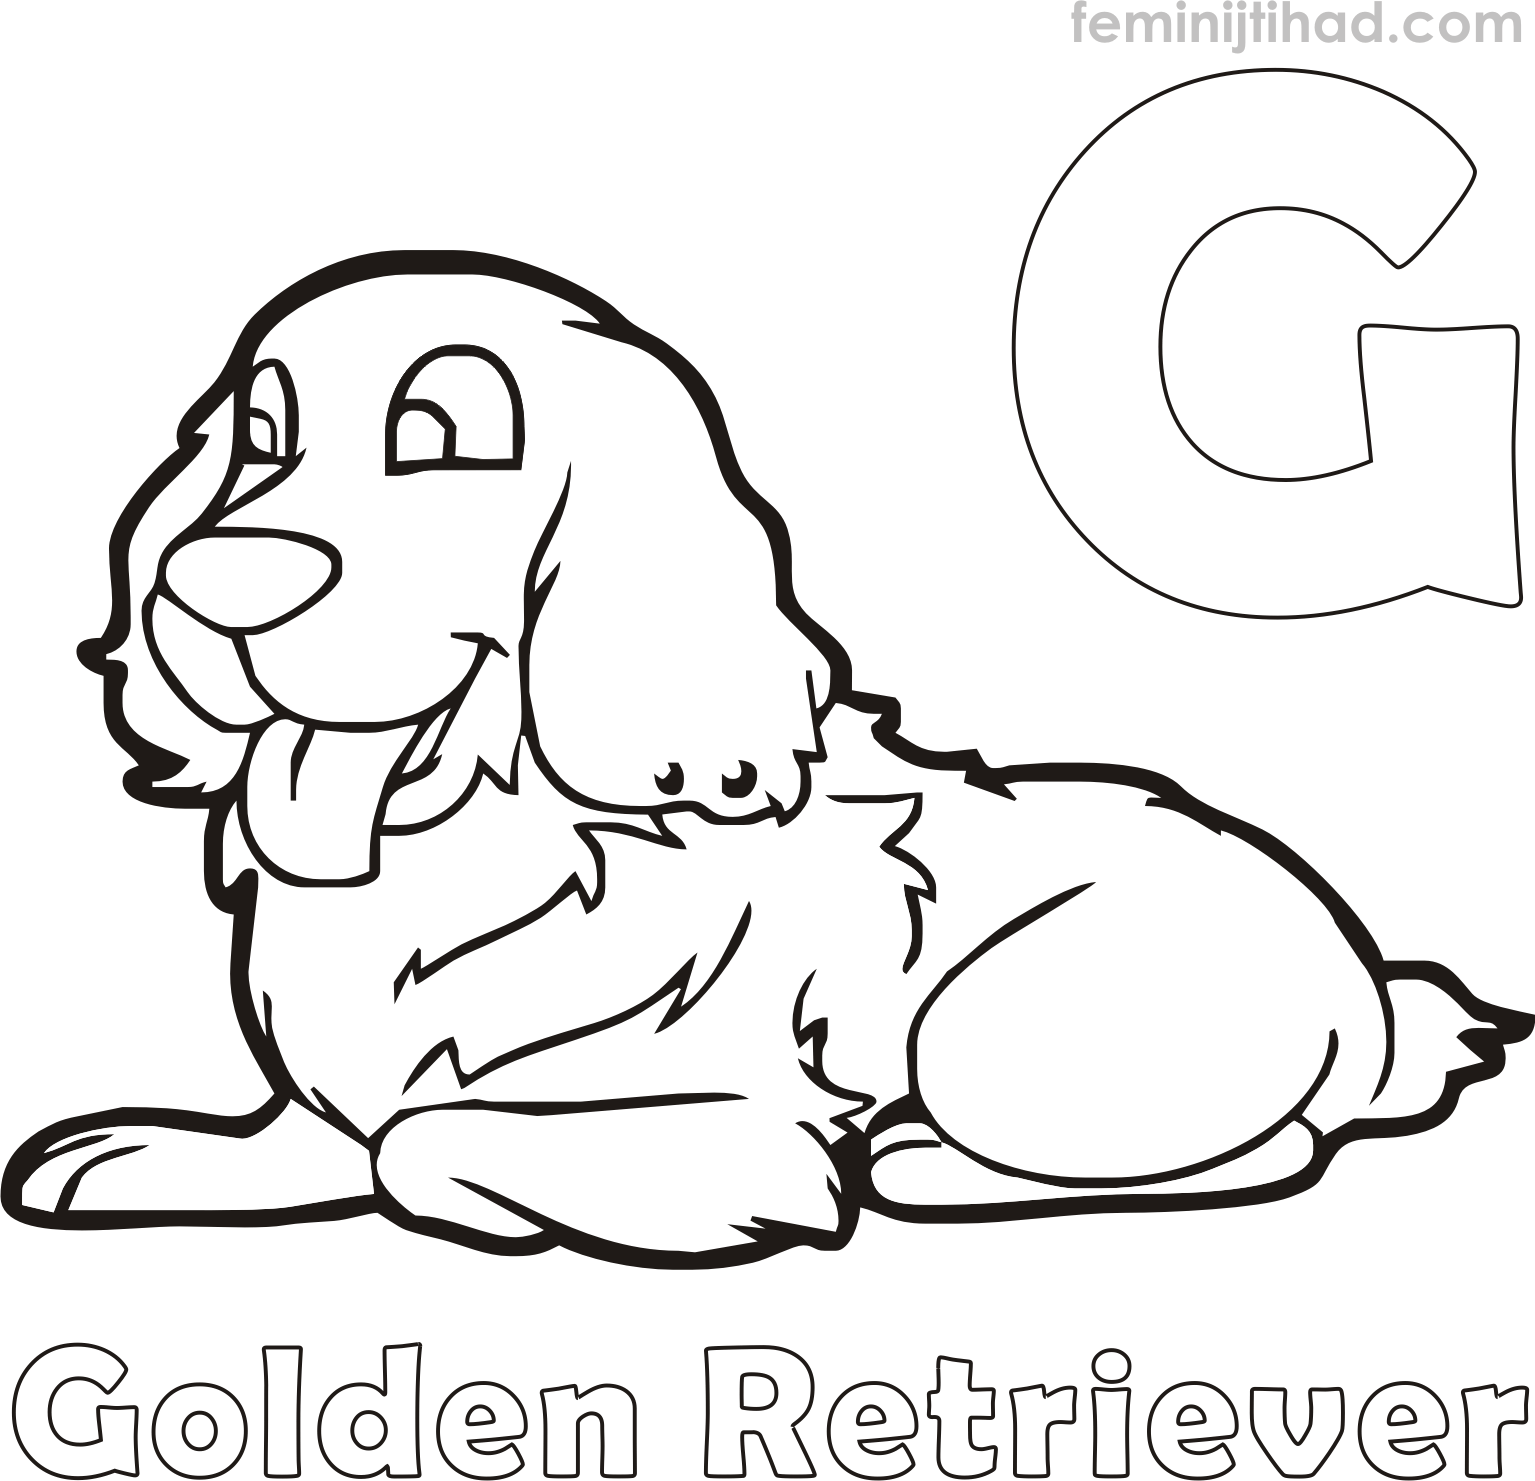 1535x1481 Free Golden Retriever Coloring Pages Coloring Pages For Kids